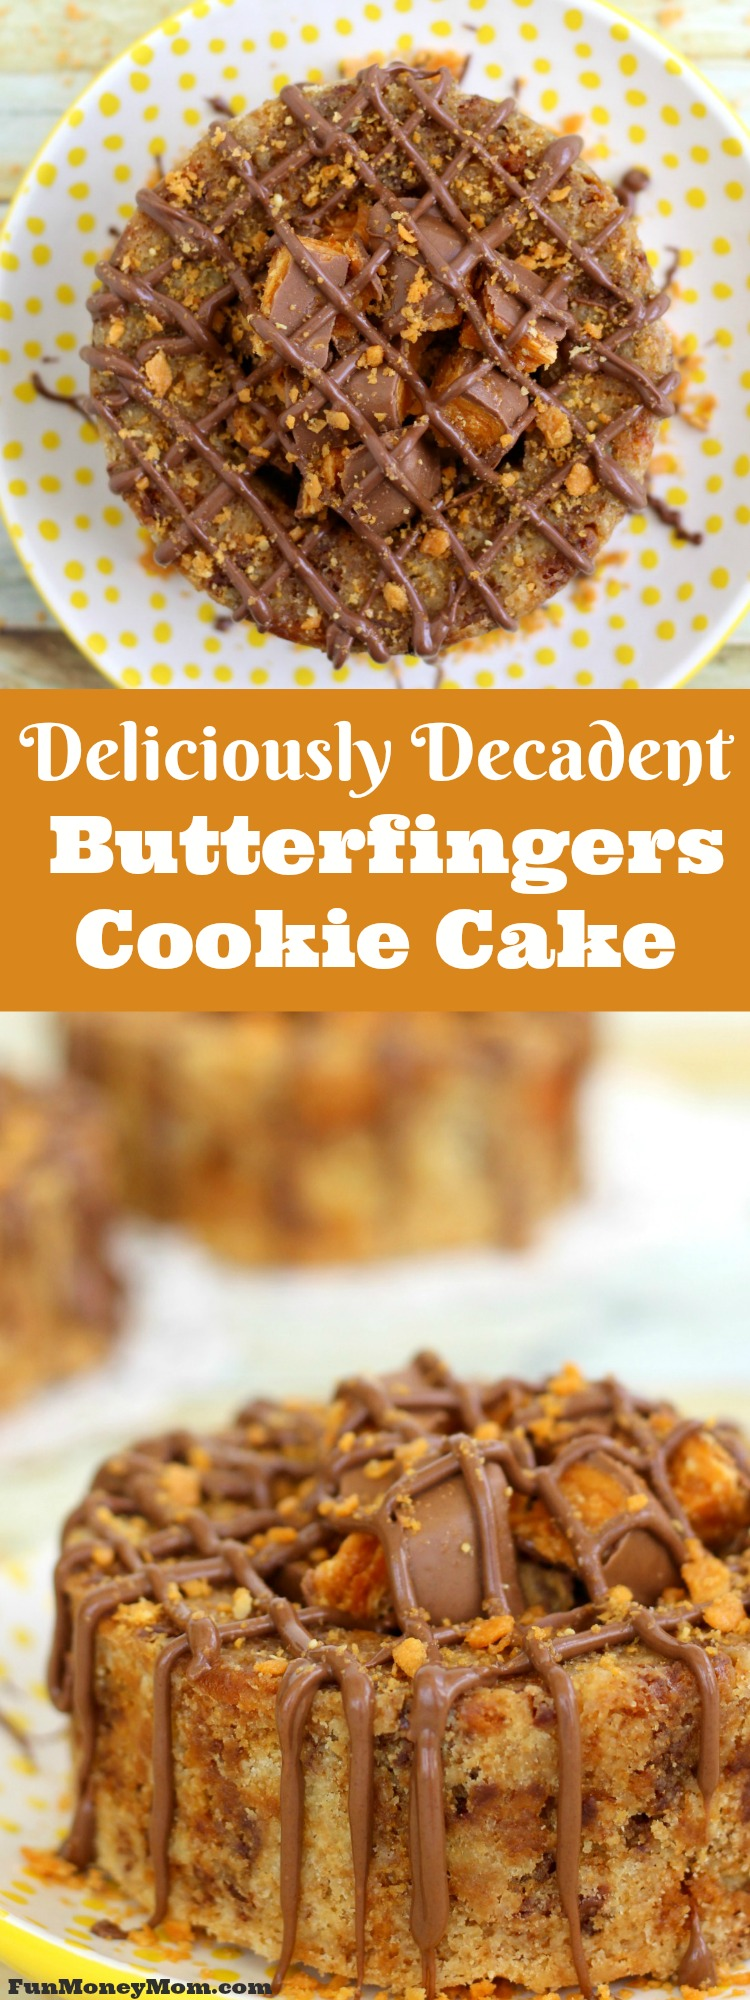 I seriously love that this mini cookie cake combines the peanut butter taste of Butterfingers combined with a delicious chocolate chip cookie! This Butterfingers Cookie Cake is a match made in heaven! #mixinmoments #ad